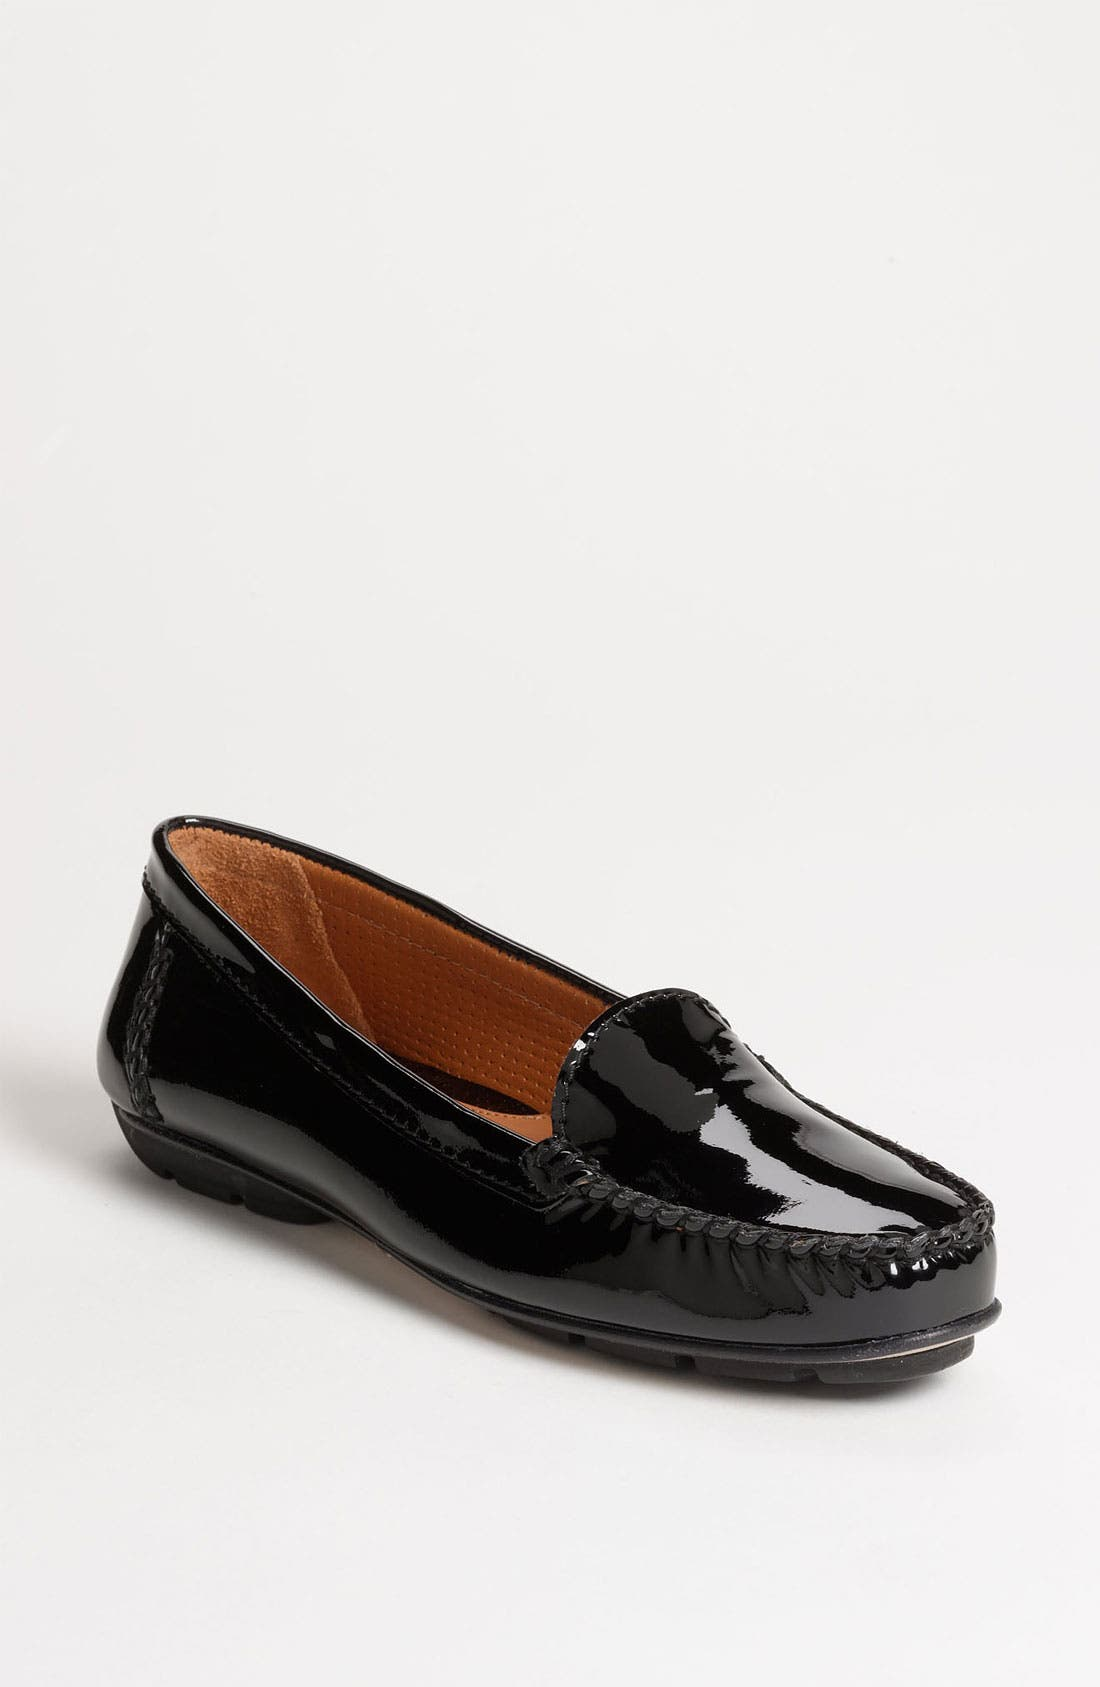 Alternate Image 1 Selected - Geox 'Italy' Moccasin